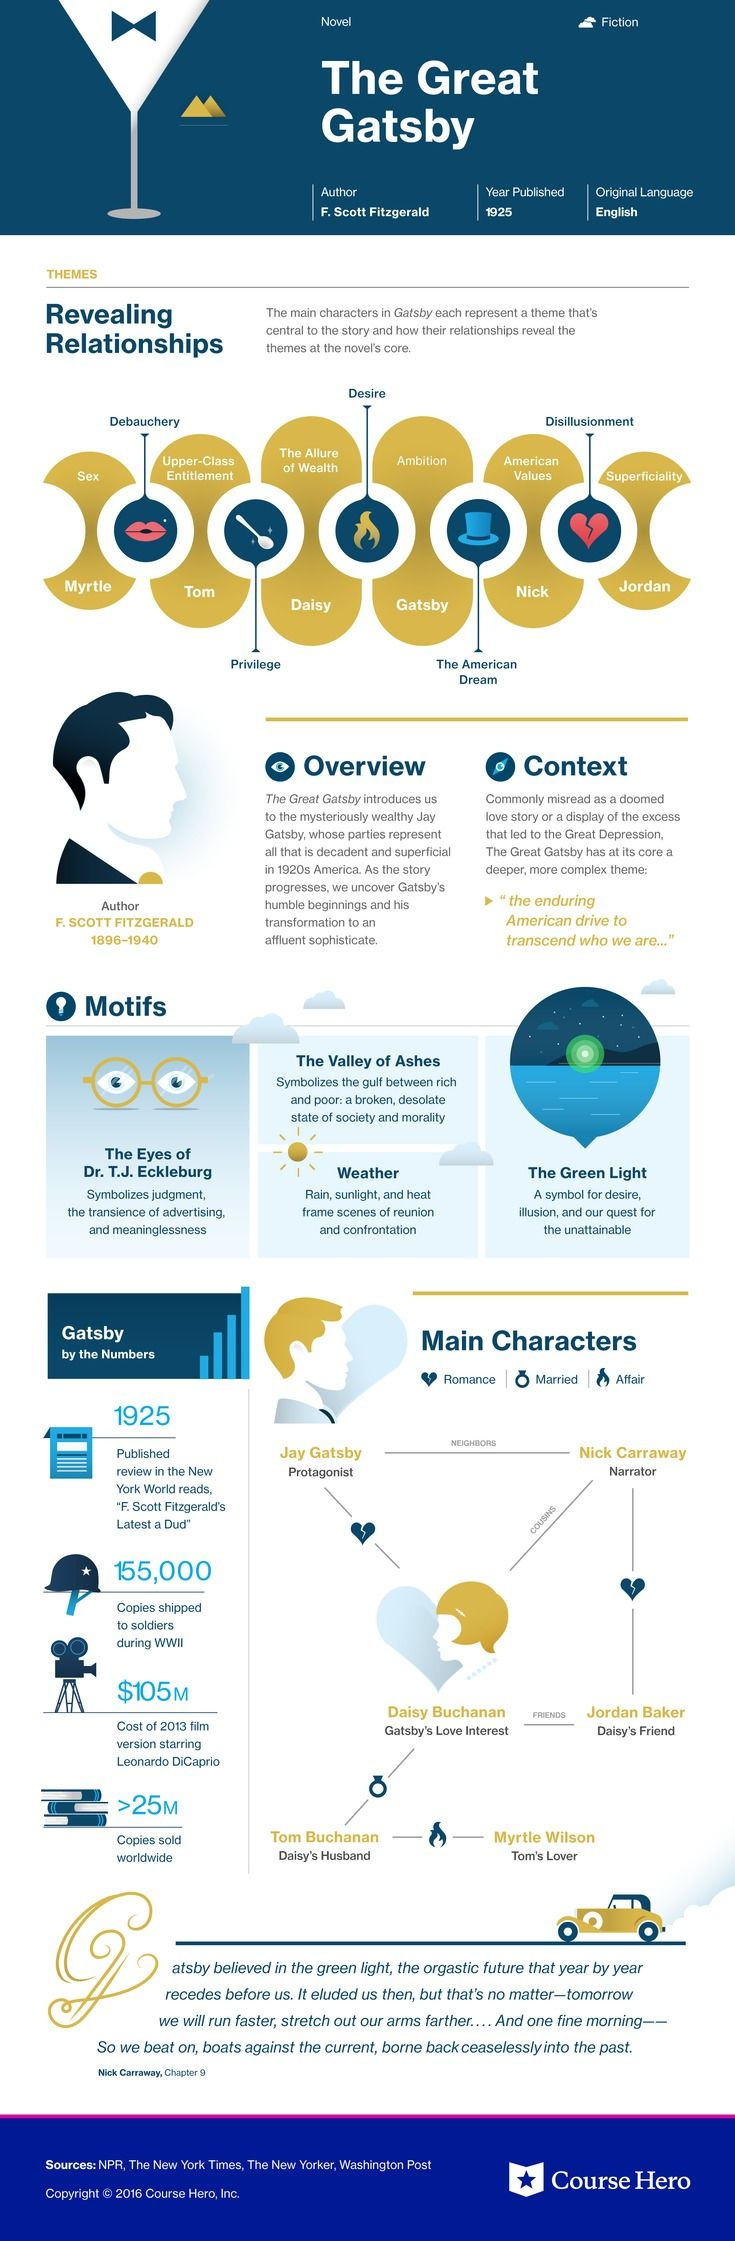 This @CourseHero infographic on The Great Gatsby is both visually stunning and informative!